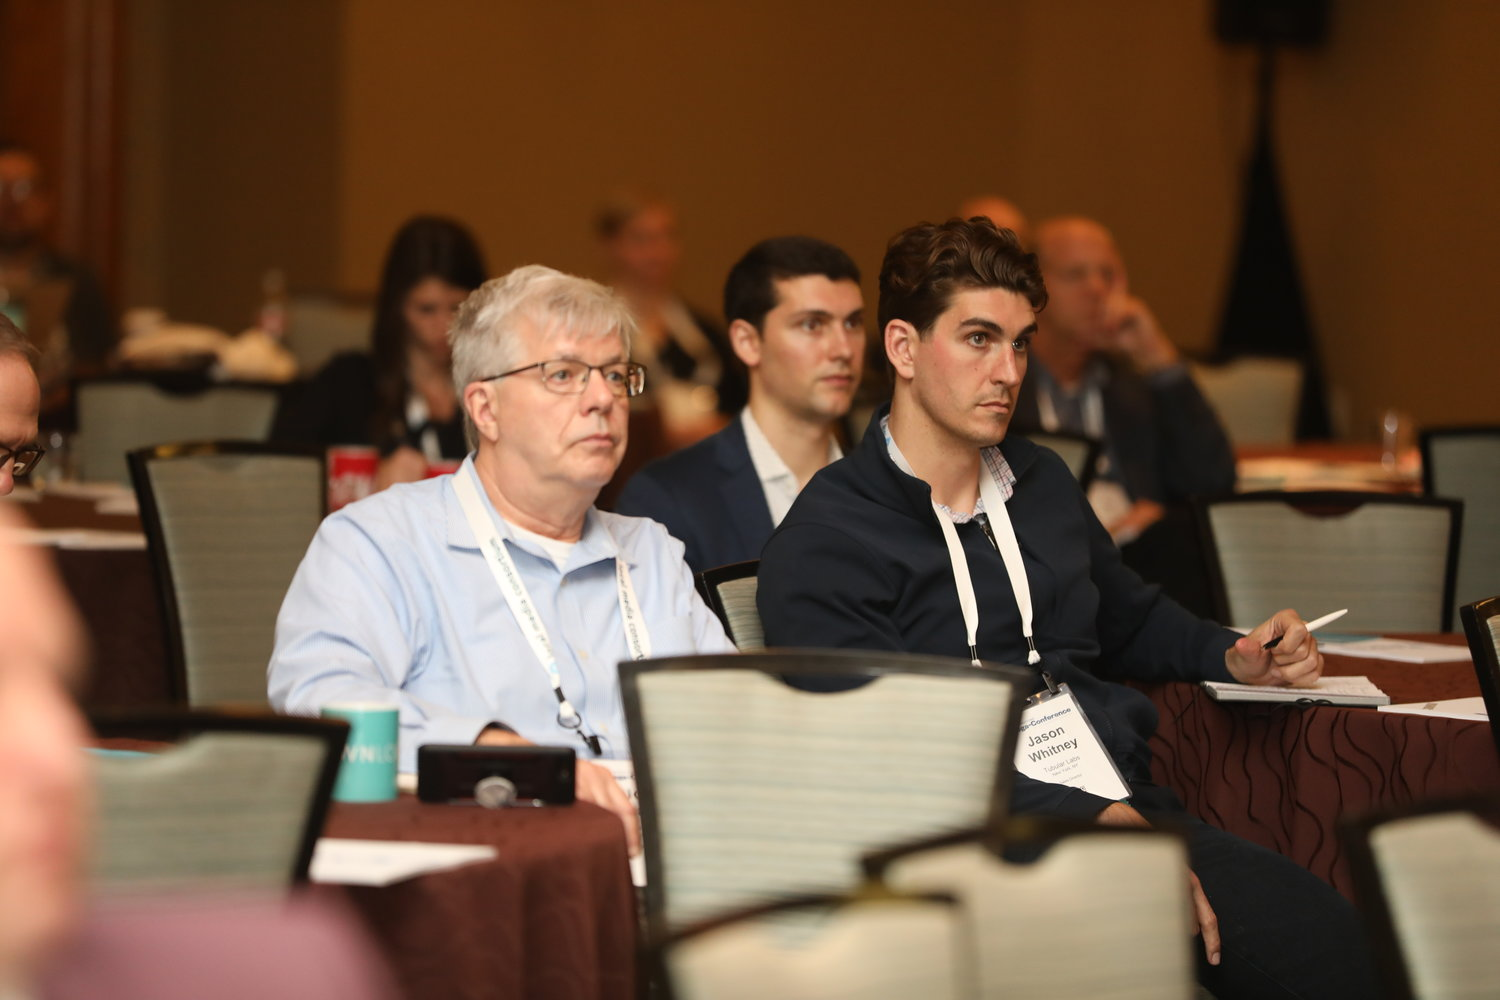 2020 Mega Conference in Fort Worth, Texas. (Photo by Bob Booth)